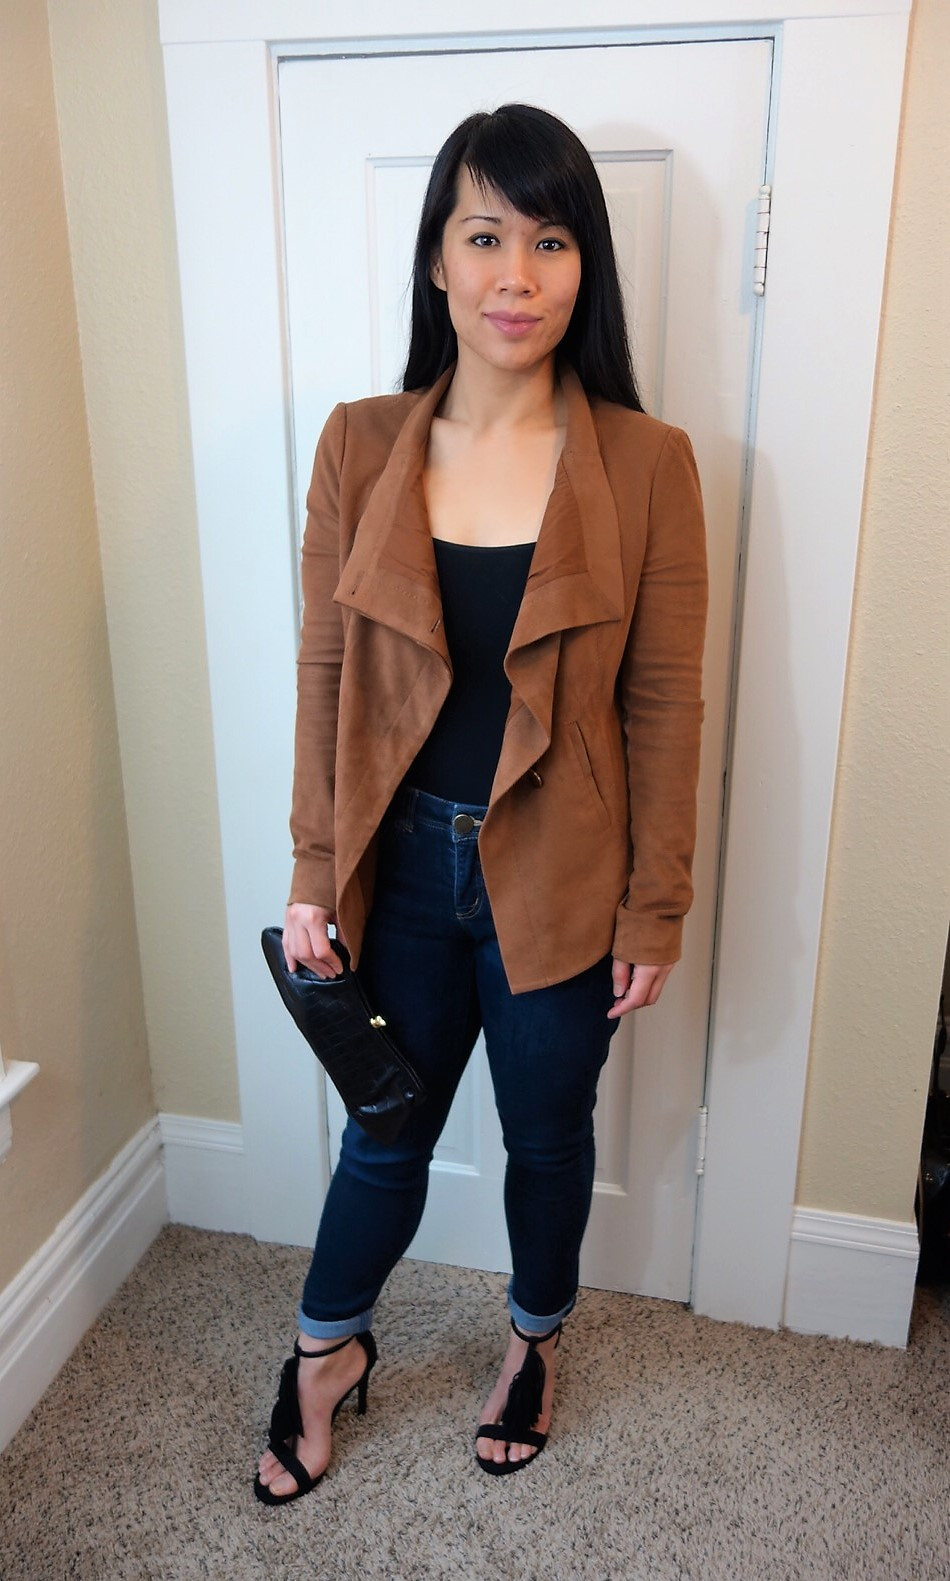 Kat Depner wearing waterfall jacket with clutch for date night